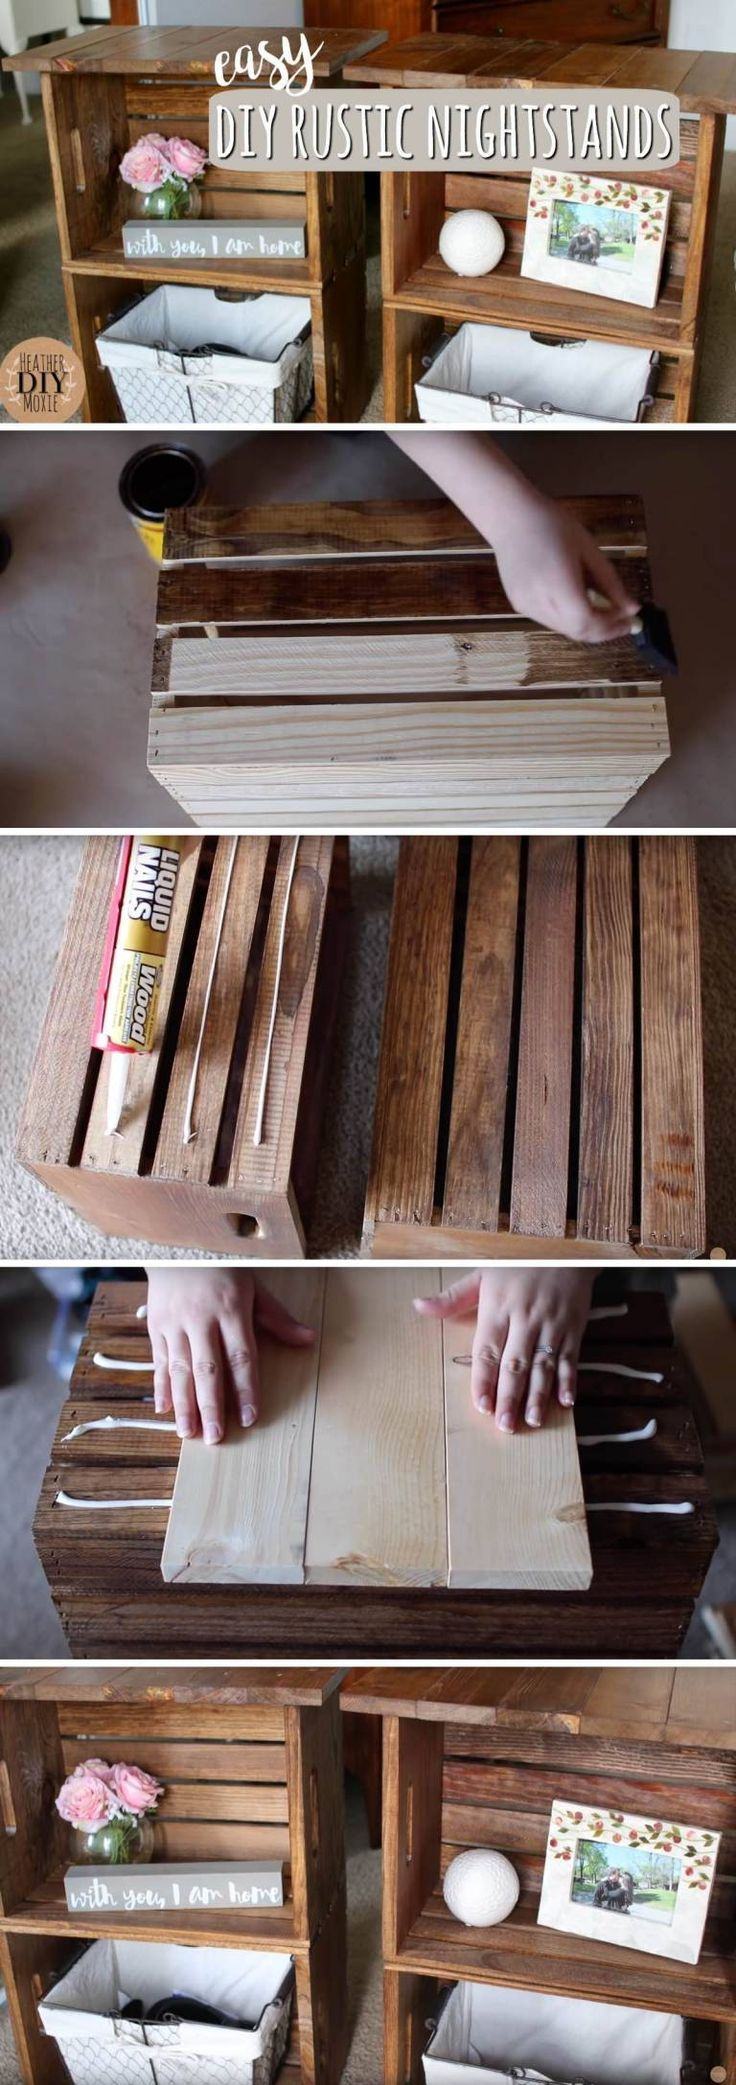 14 Marvelous Rustic Costal Home Decorating Ideas: Assembling And Adhering Two Wooden Crates Together Yields